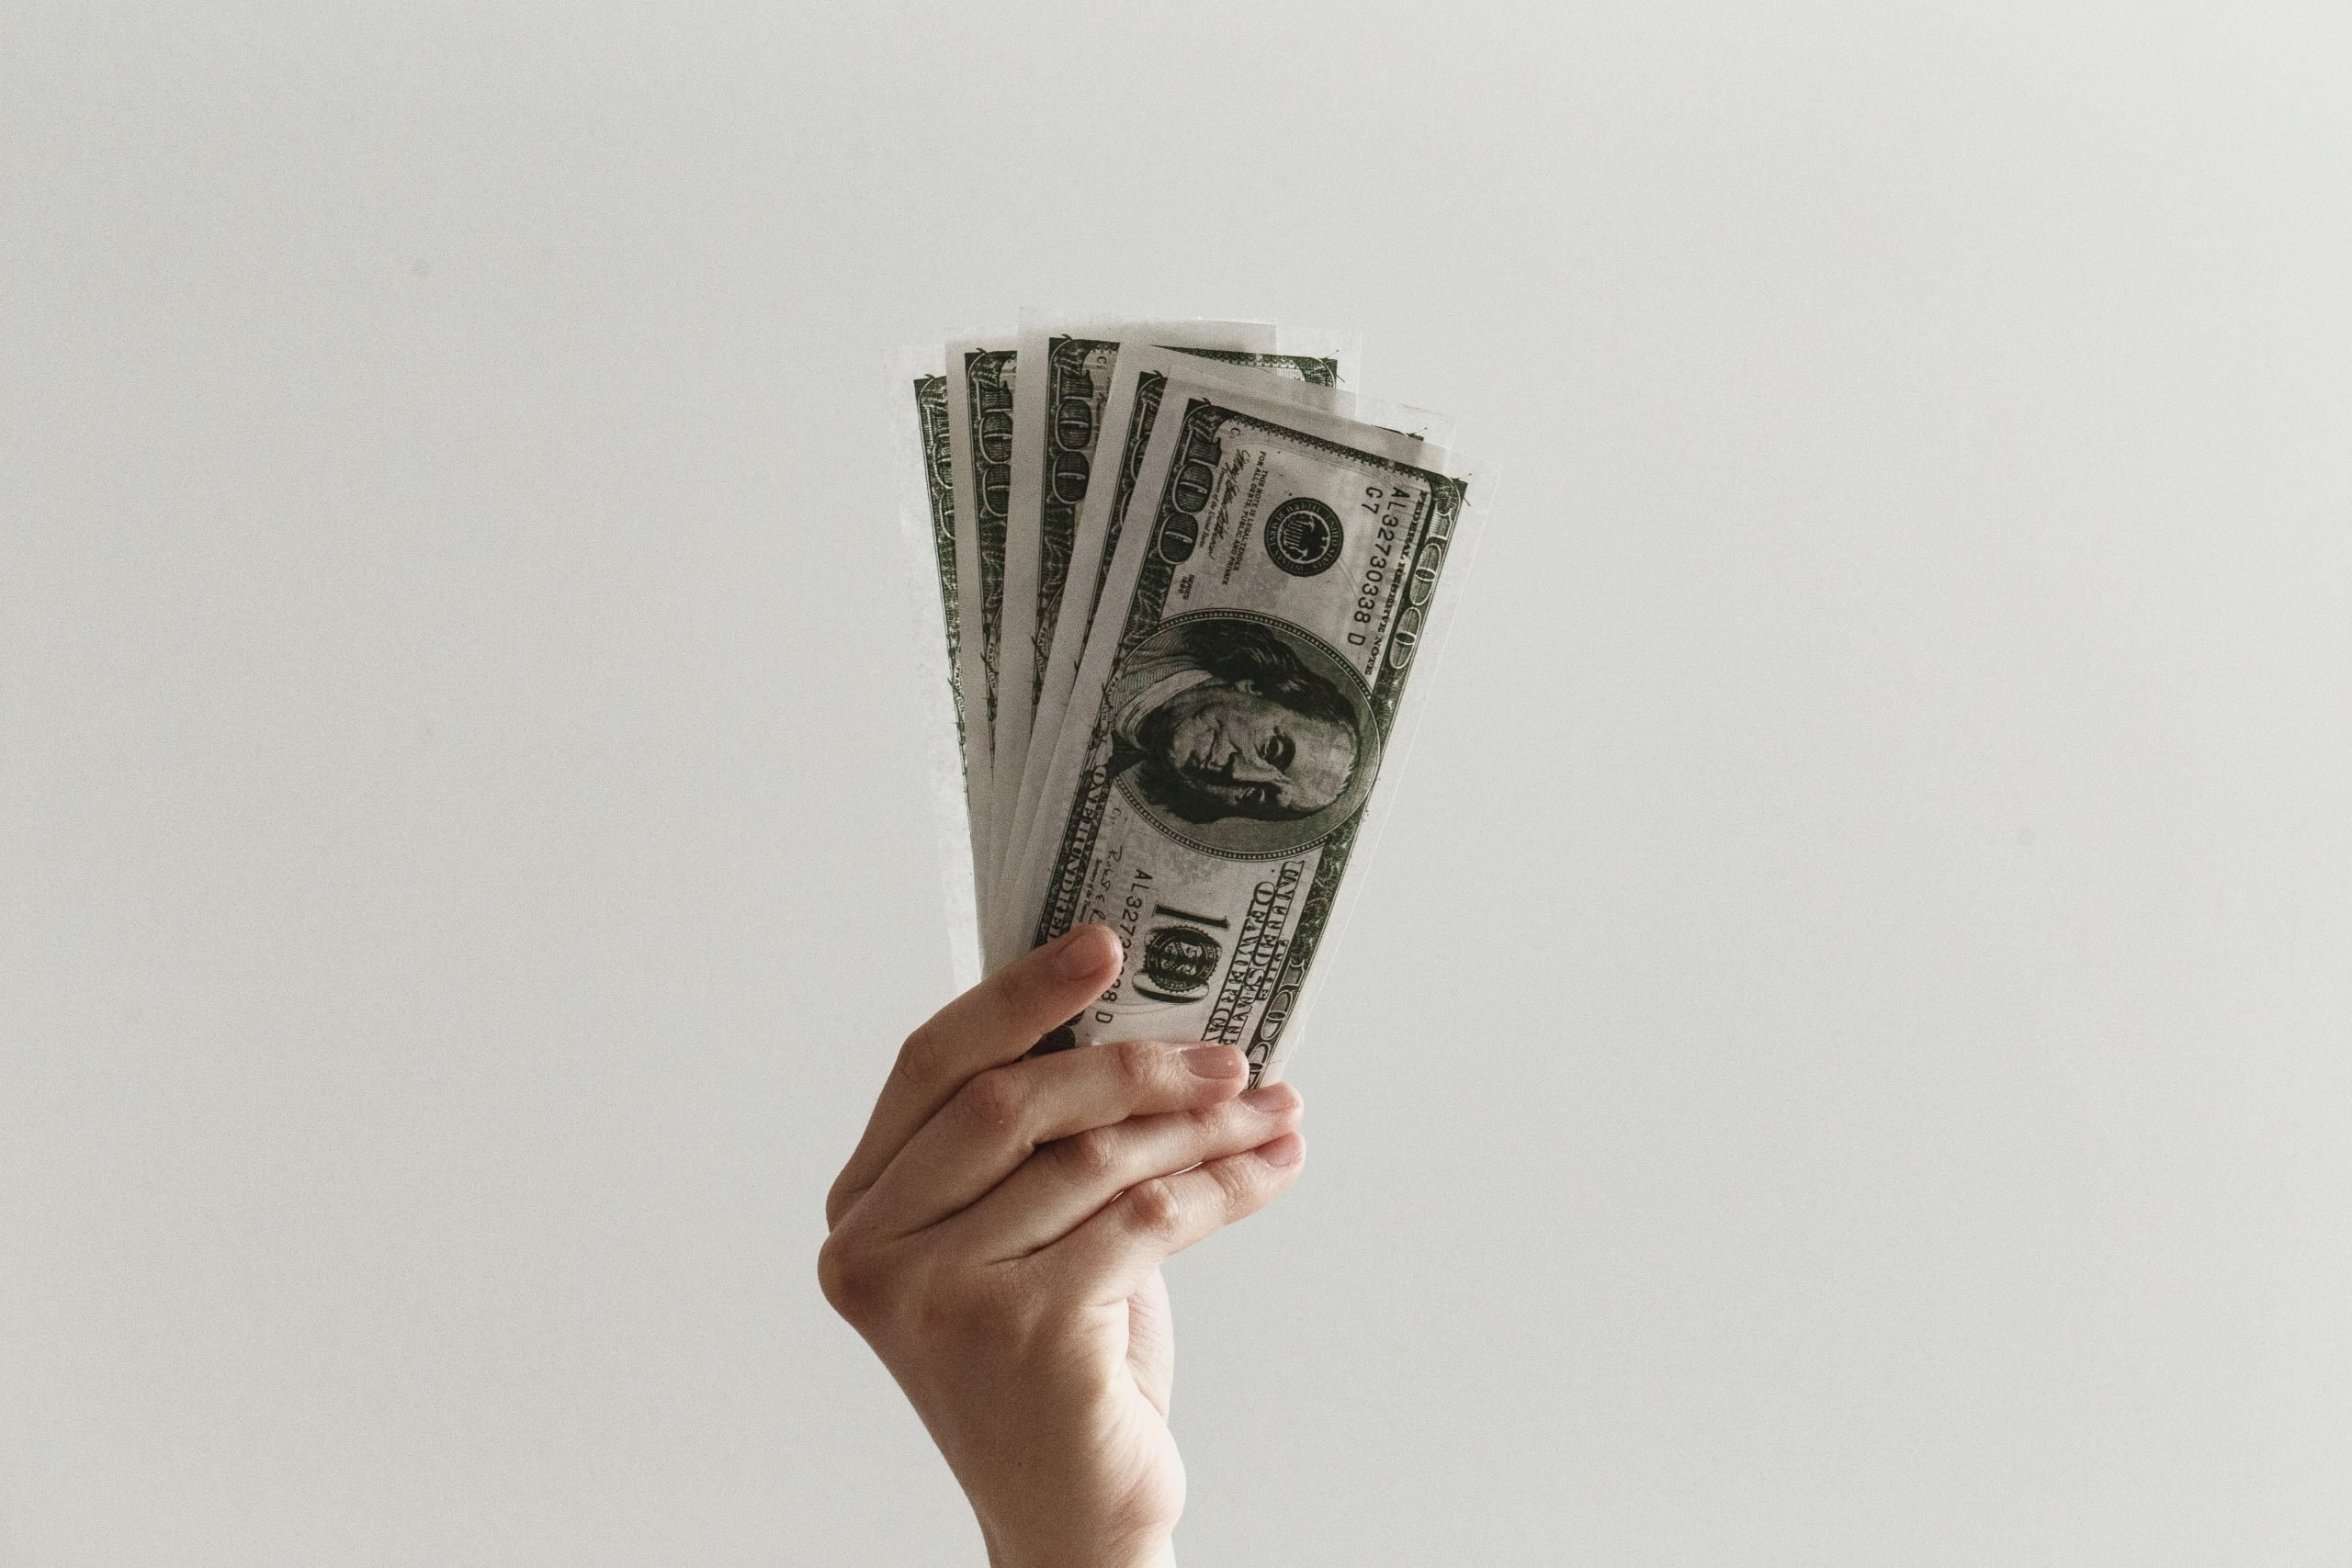 Picture of hand holding money for article How to Afford Living in NYC